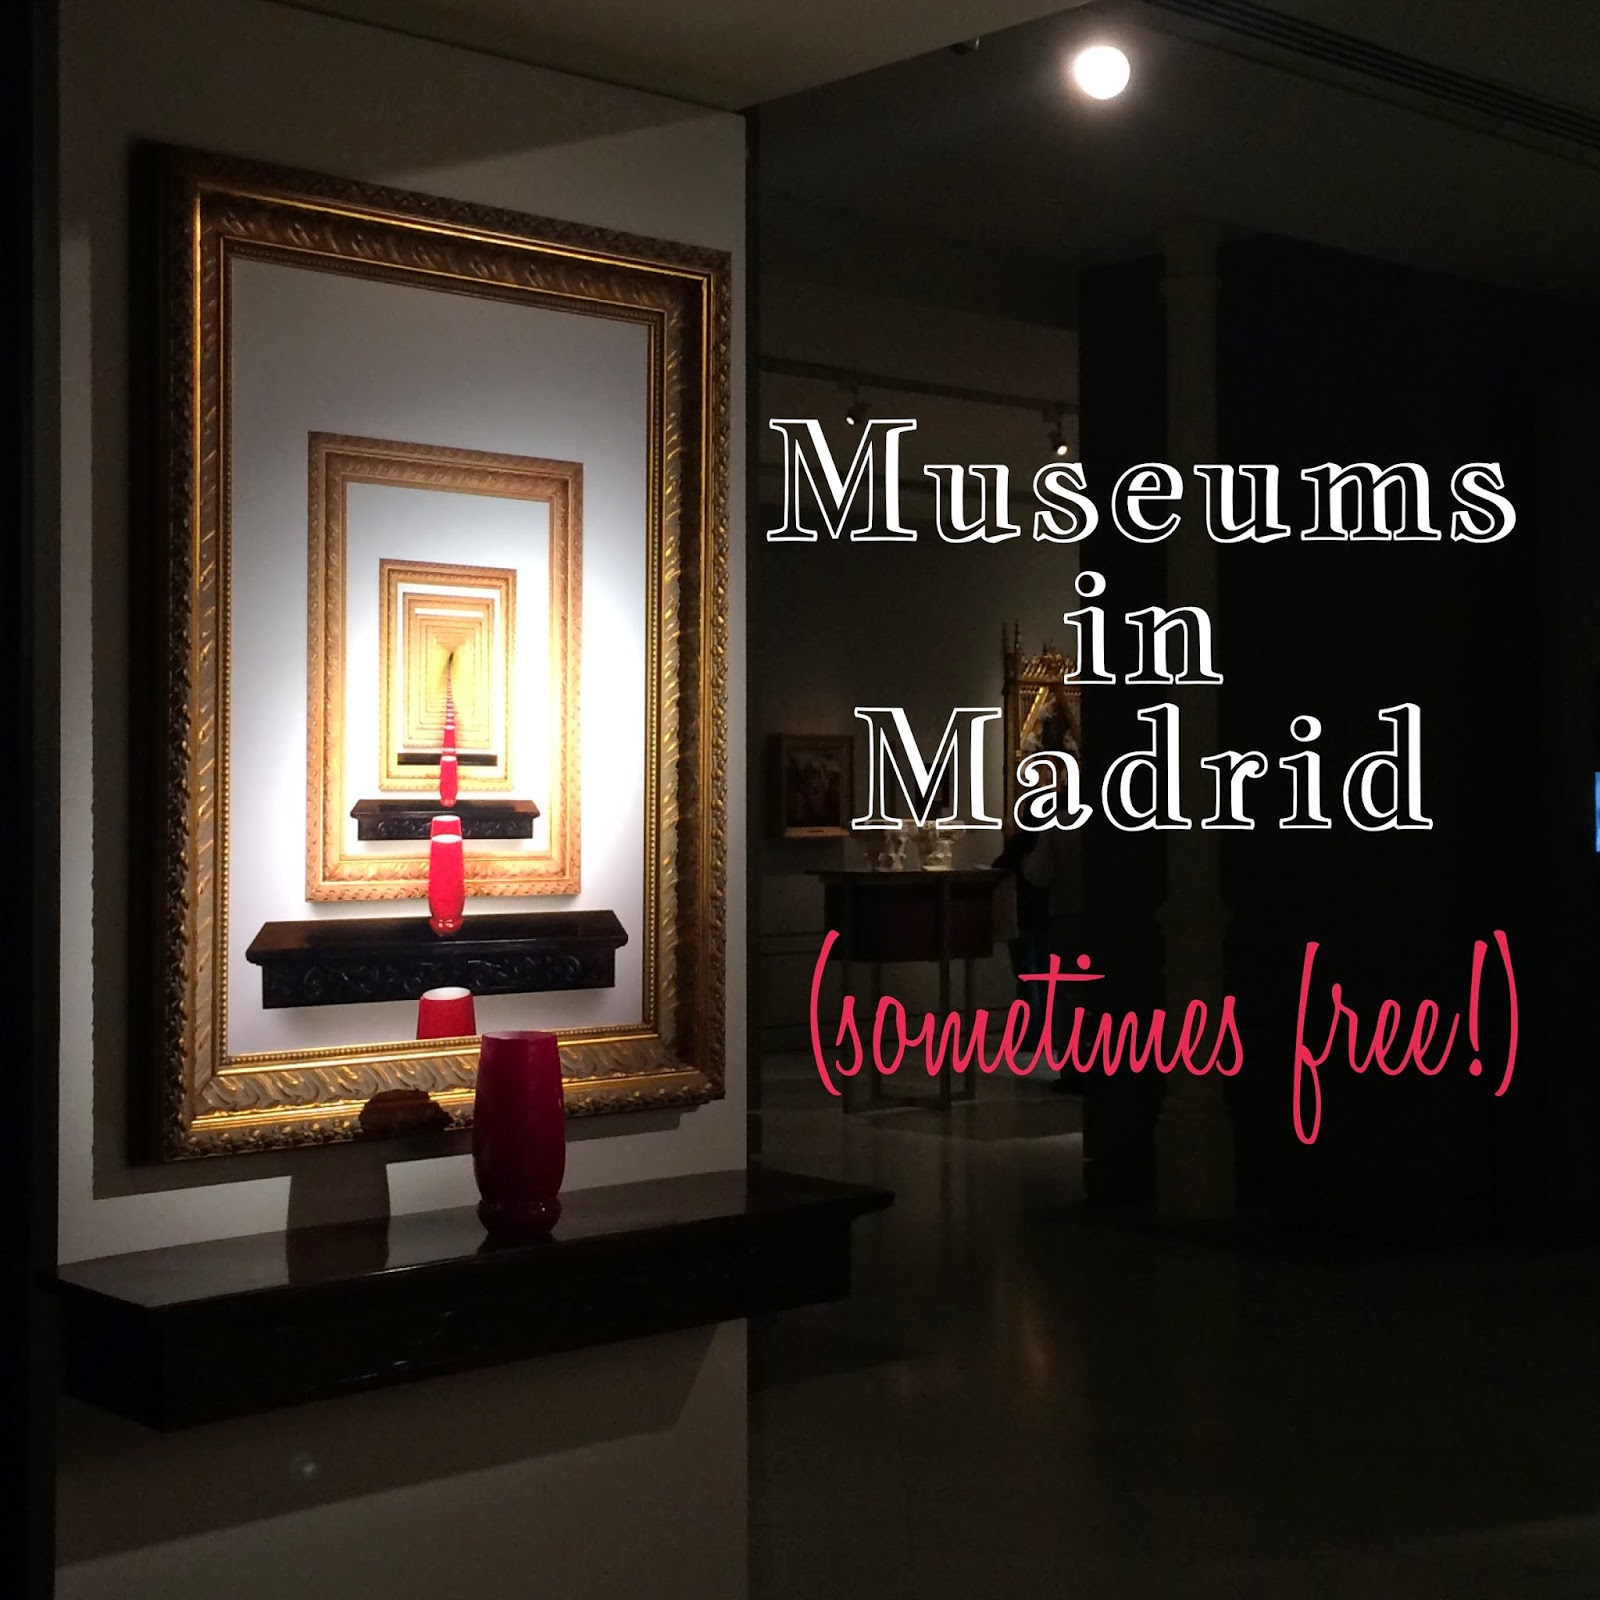 http://melthemidnightbaker.blogspot.com/2014/03/museums-in-madrid-and-some-food.html